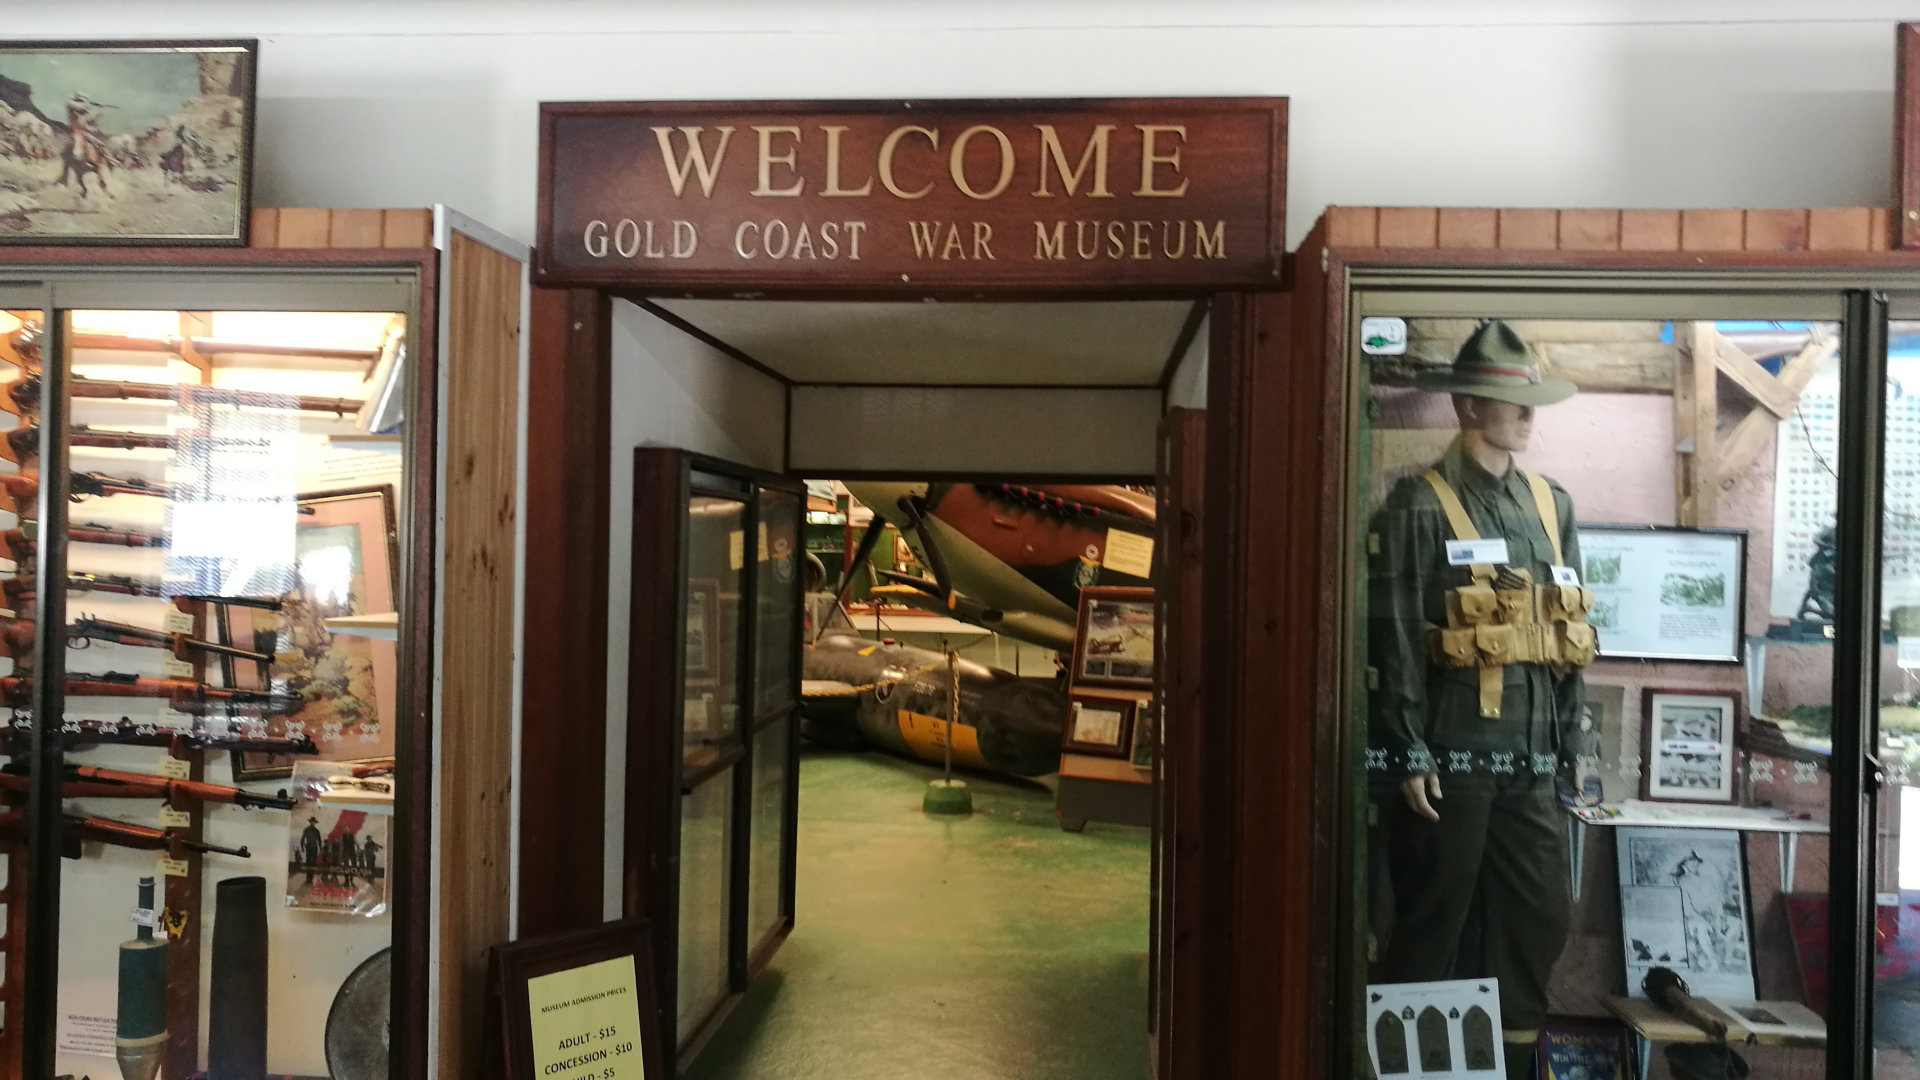 Entrance to the Gold Coast War Museum at Mudgeeraba. The museum has a large collection of military equipment and artefacts, ranging from small memorabilia through to aircraft and tanks